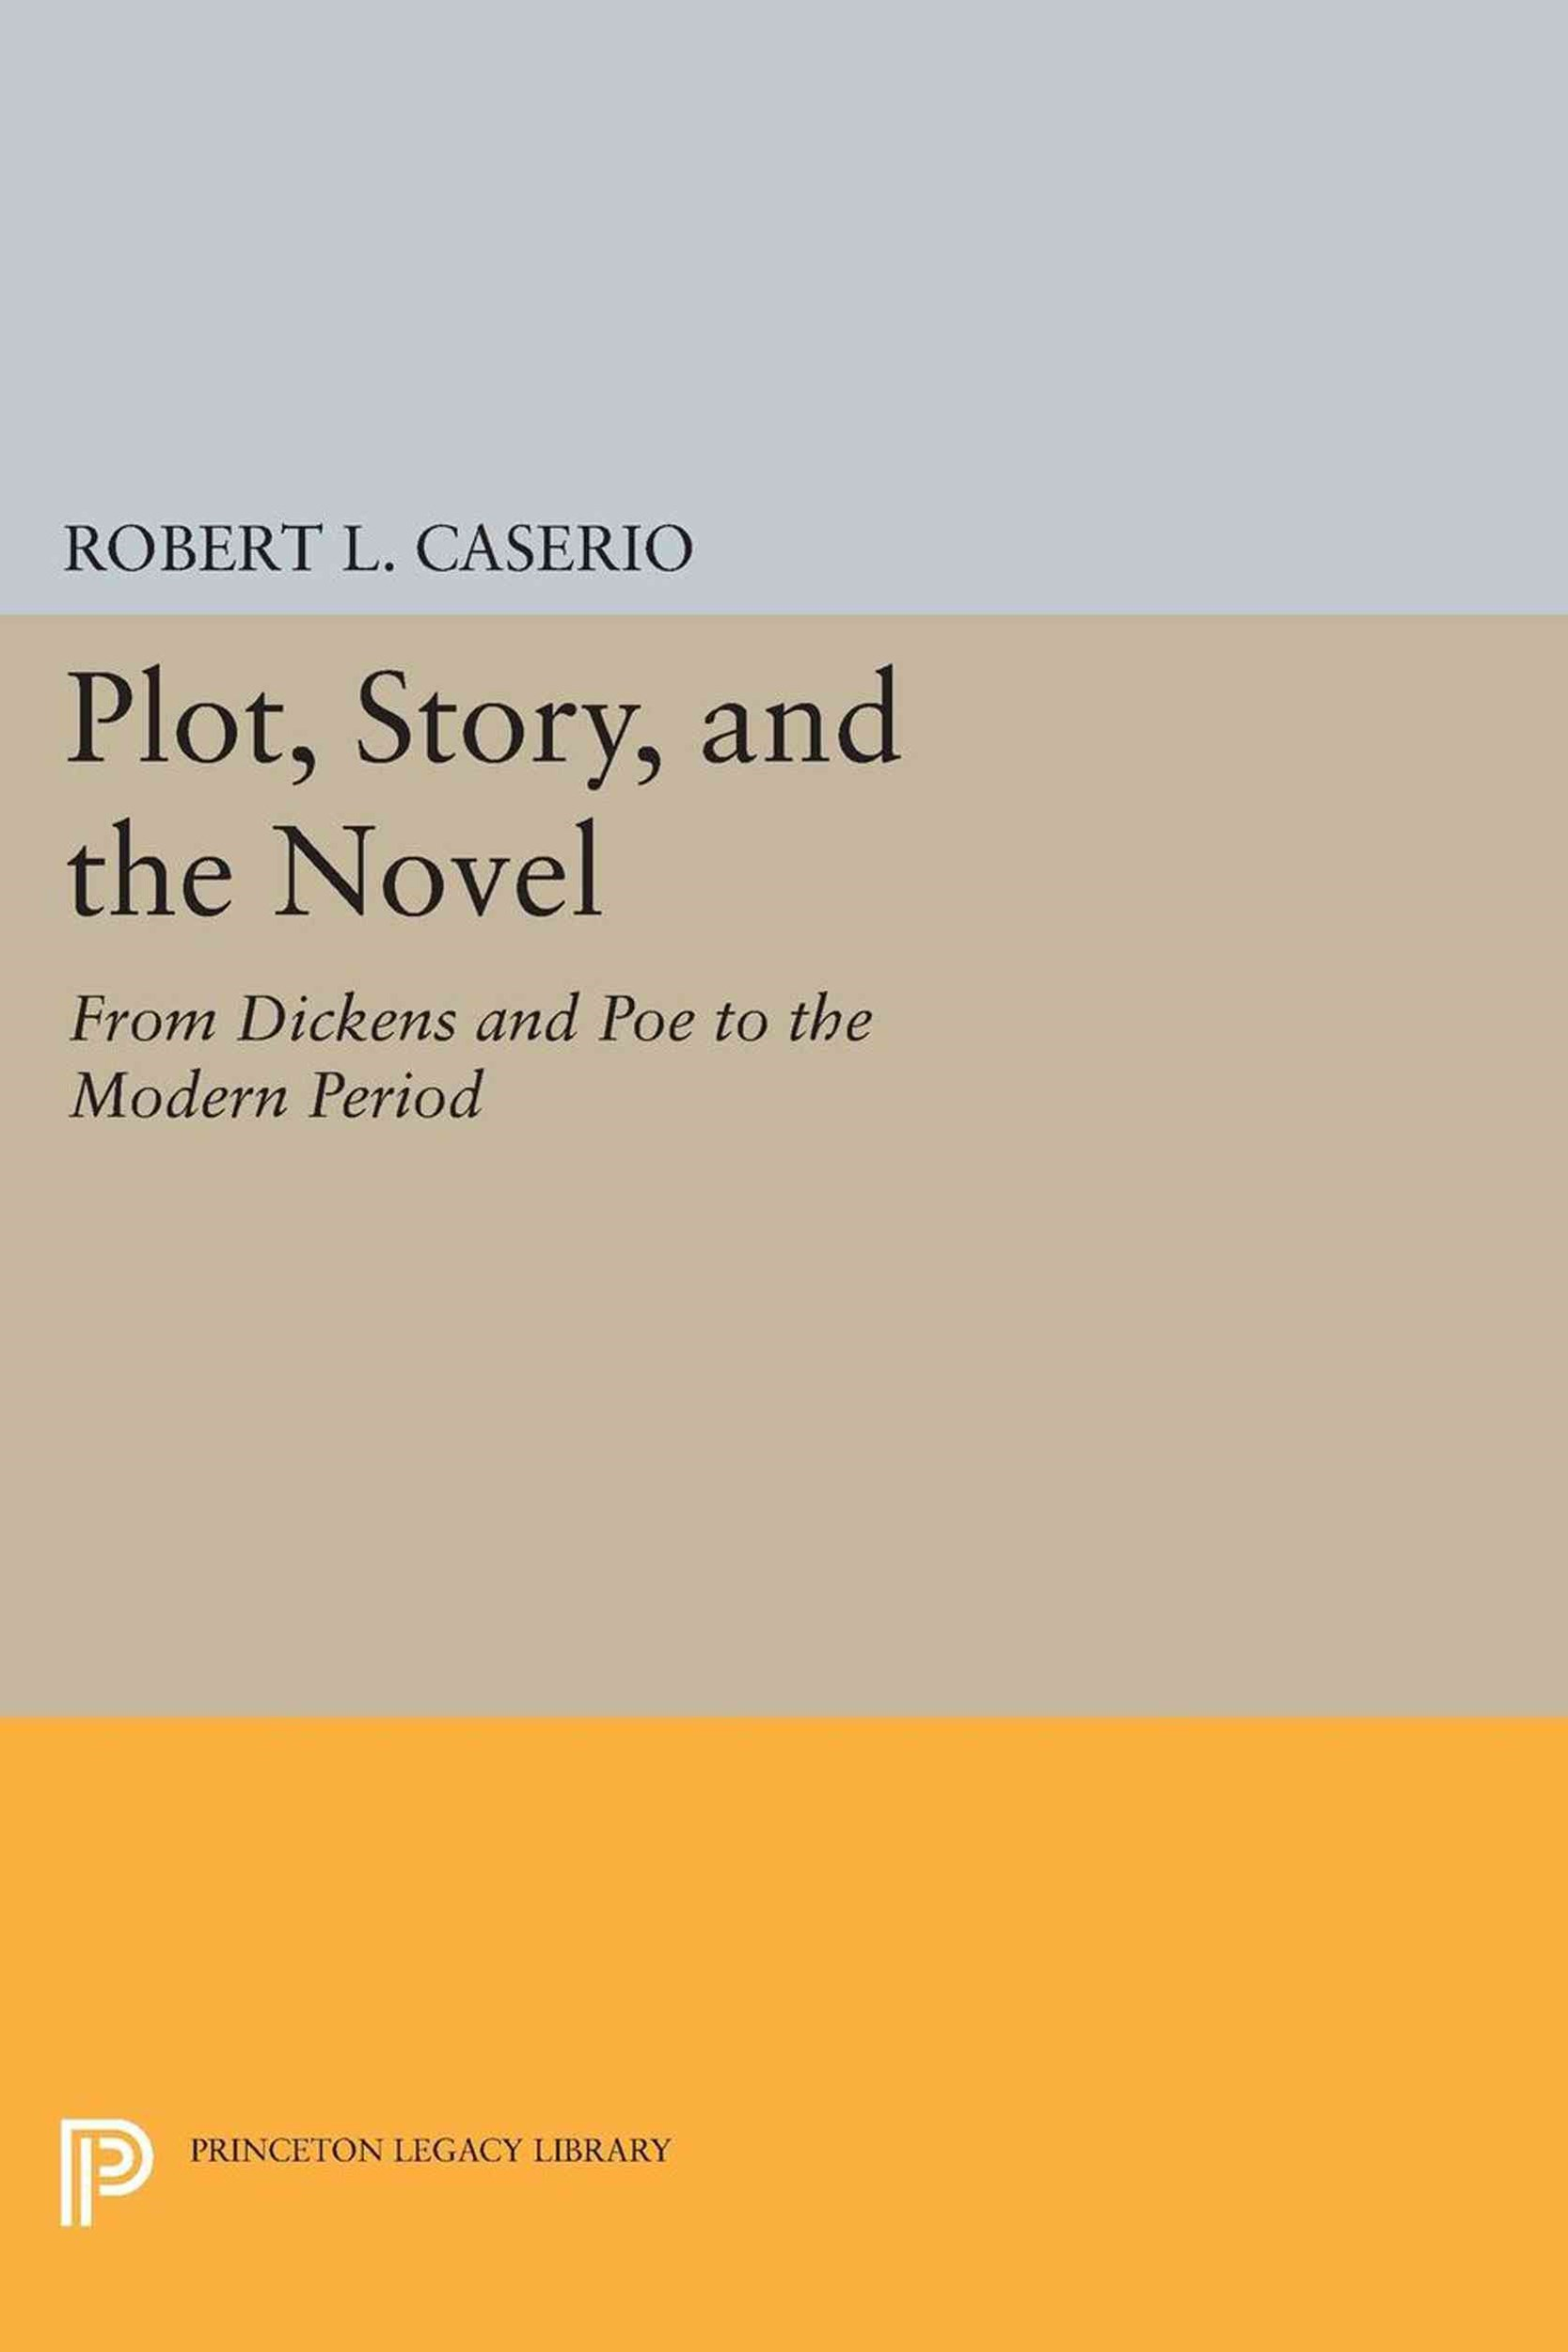 Plot, Story, and the Novel